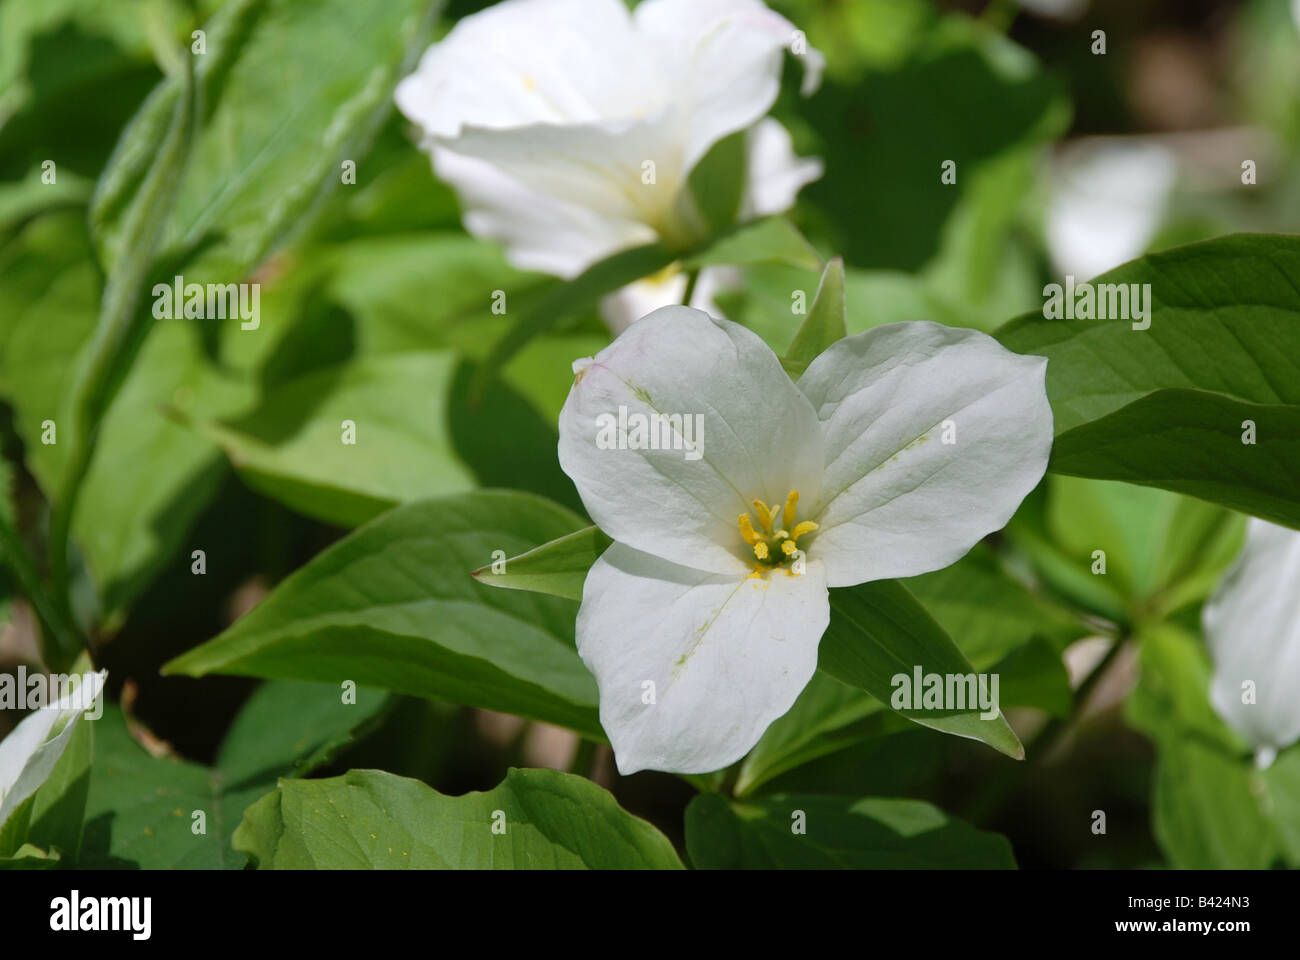 Trillium Flower Ontario Stock Photos Trillium Flower Ontario Stock